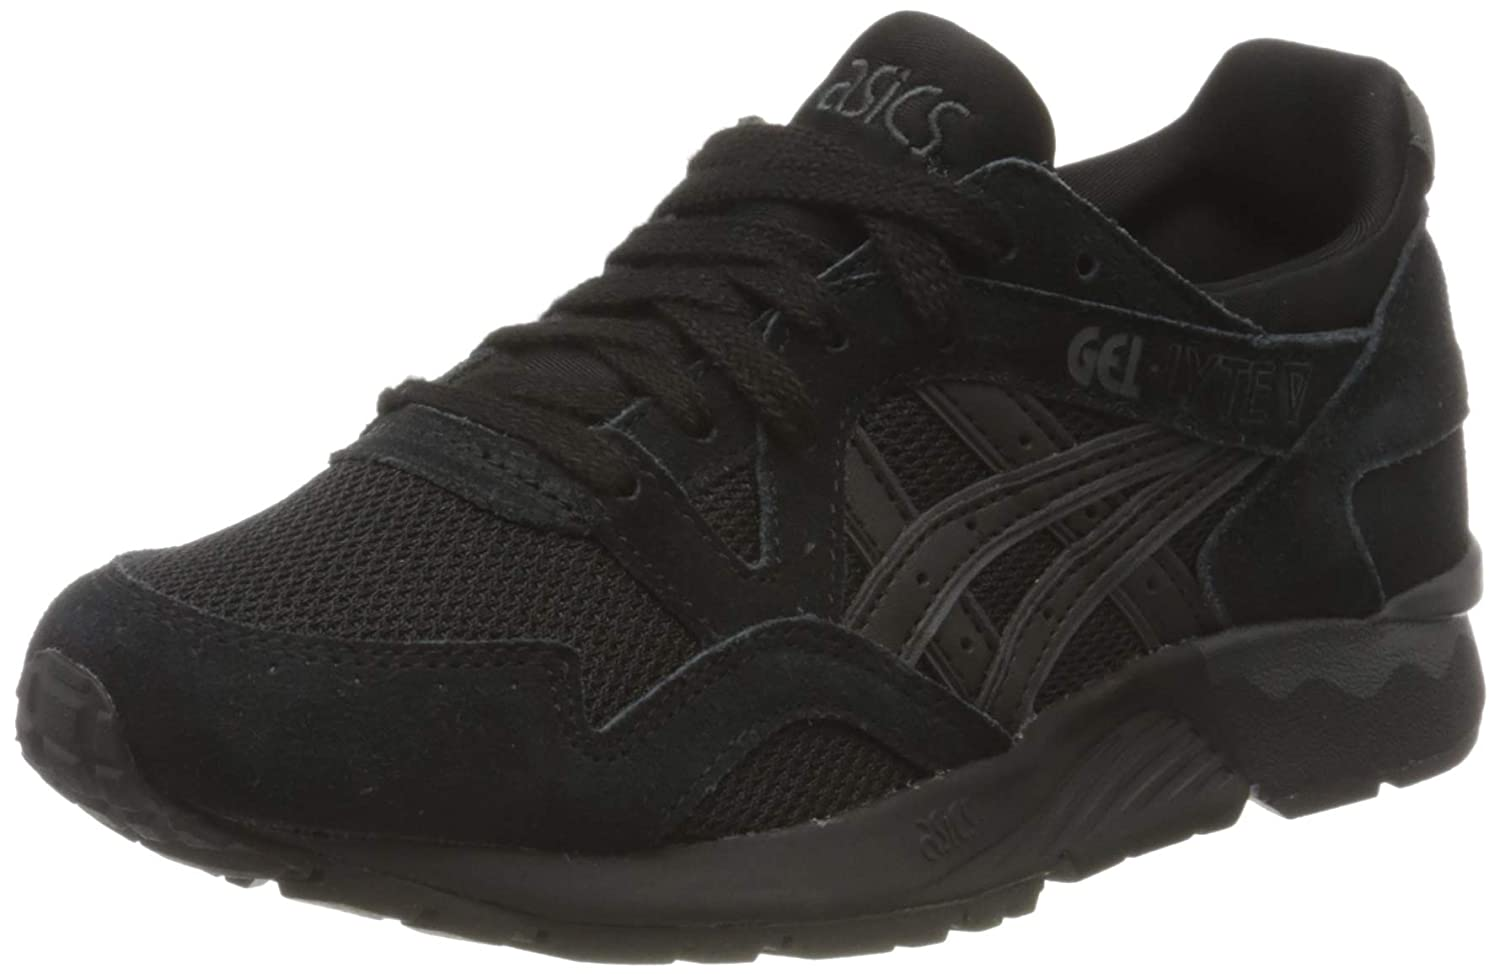 Asics Gel-lyte V - Zapatillas de running Unisex adulto: Amazon.es: Zapatos y complementos